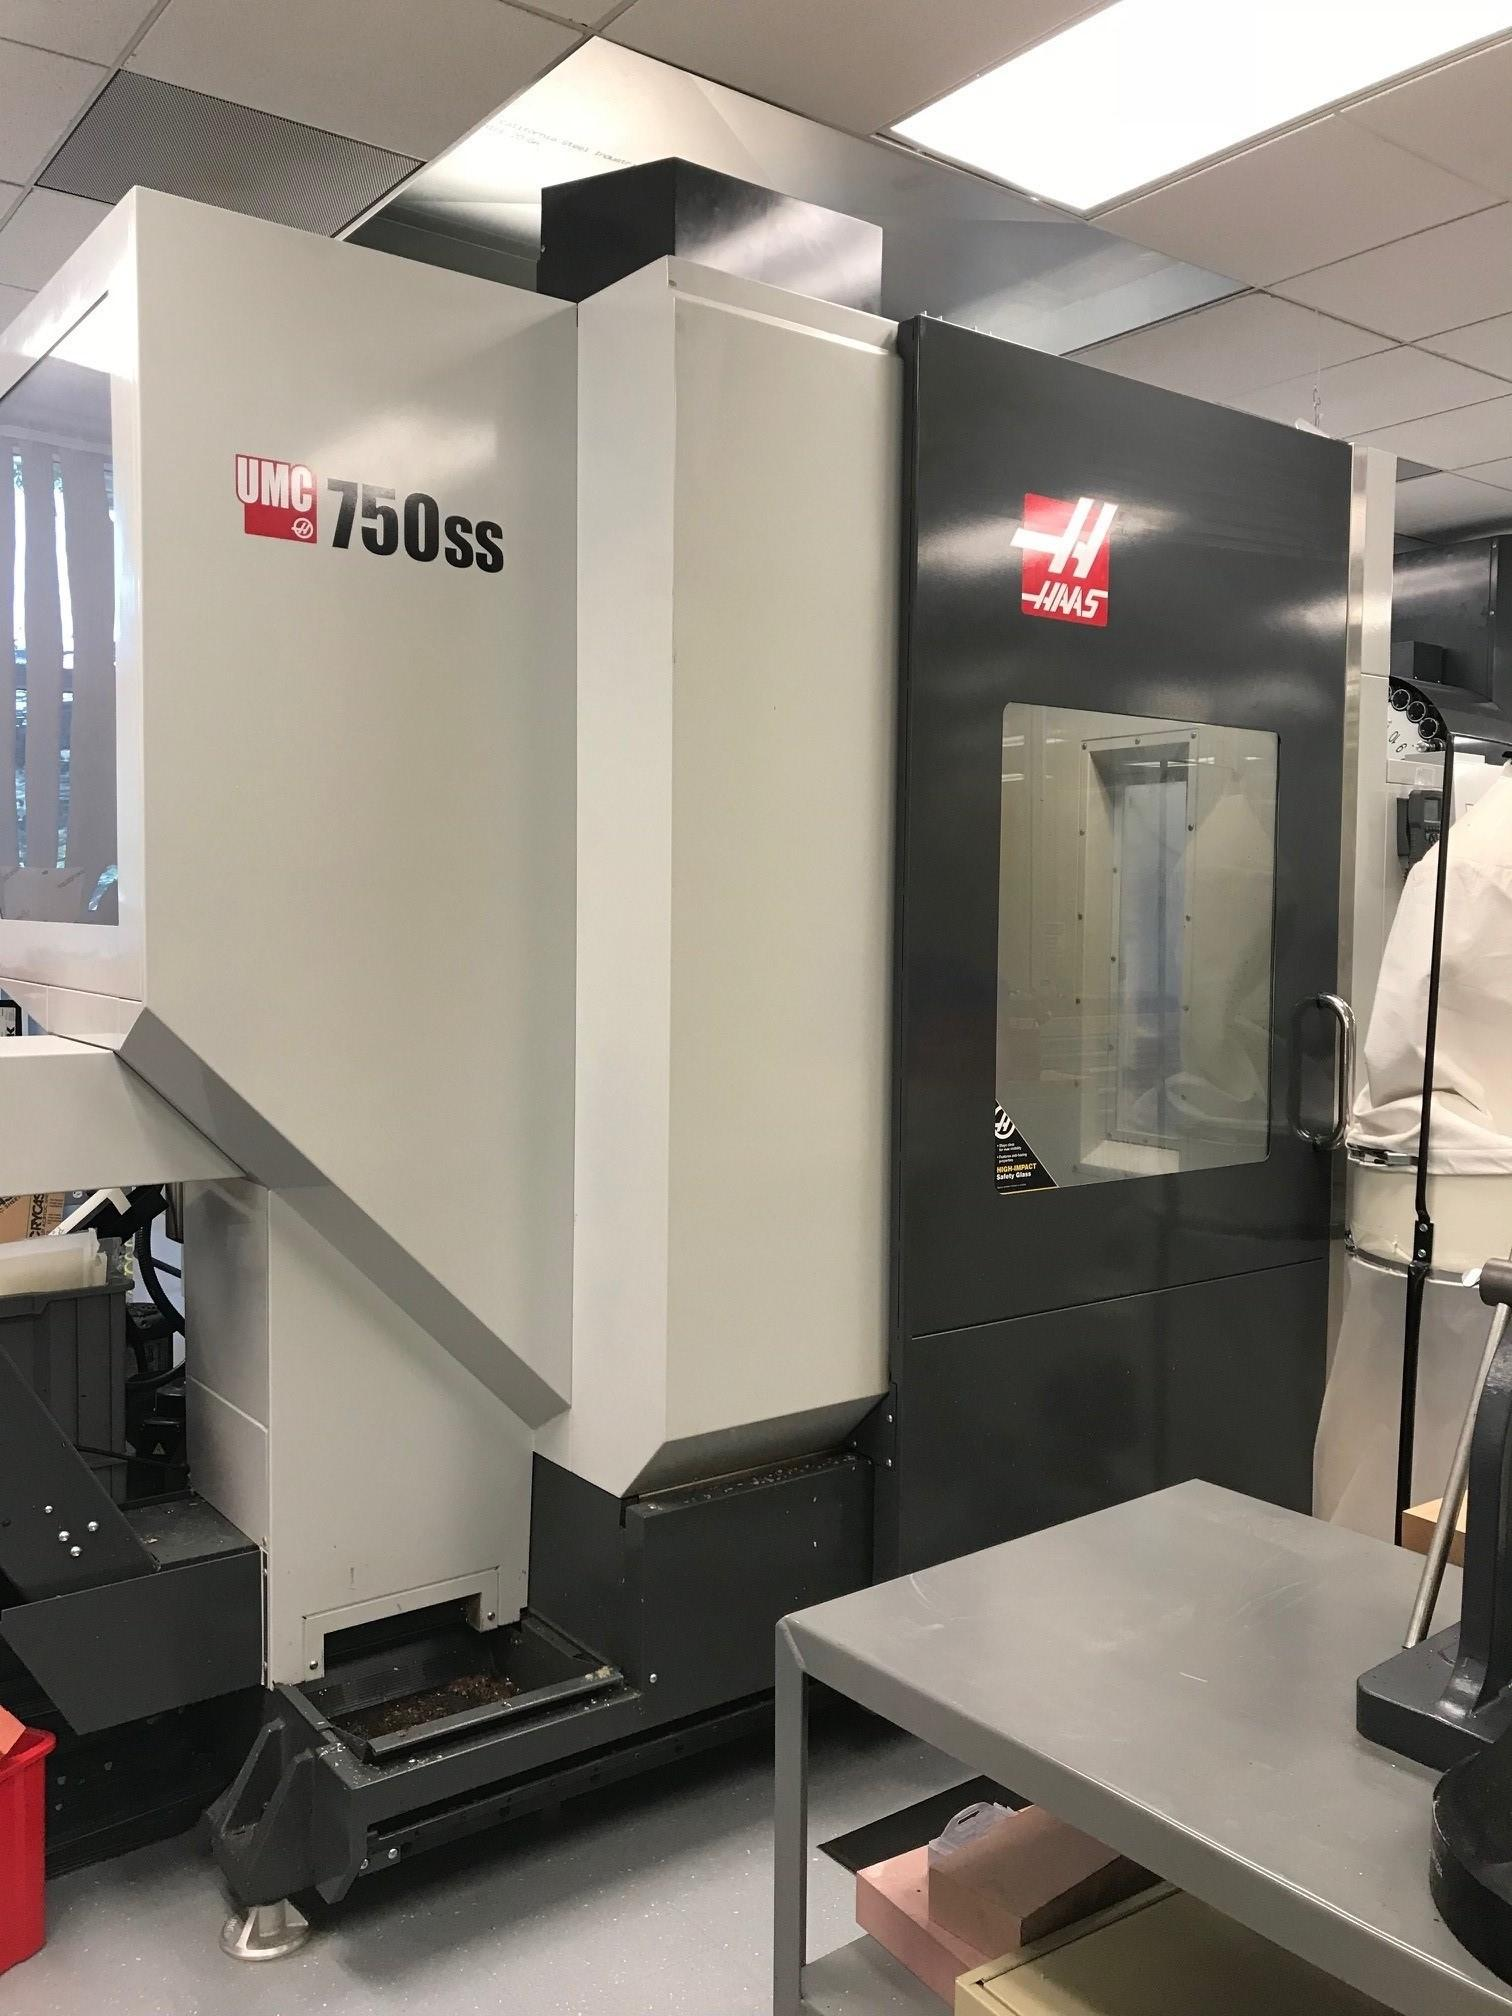 2015 HAAS UMC-750SS 5 Axis Vertical Machining Center